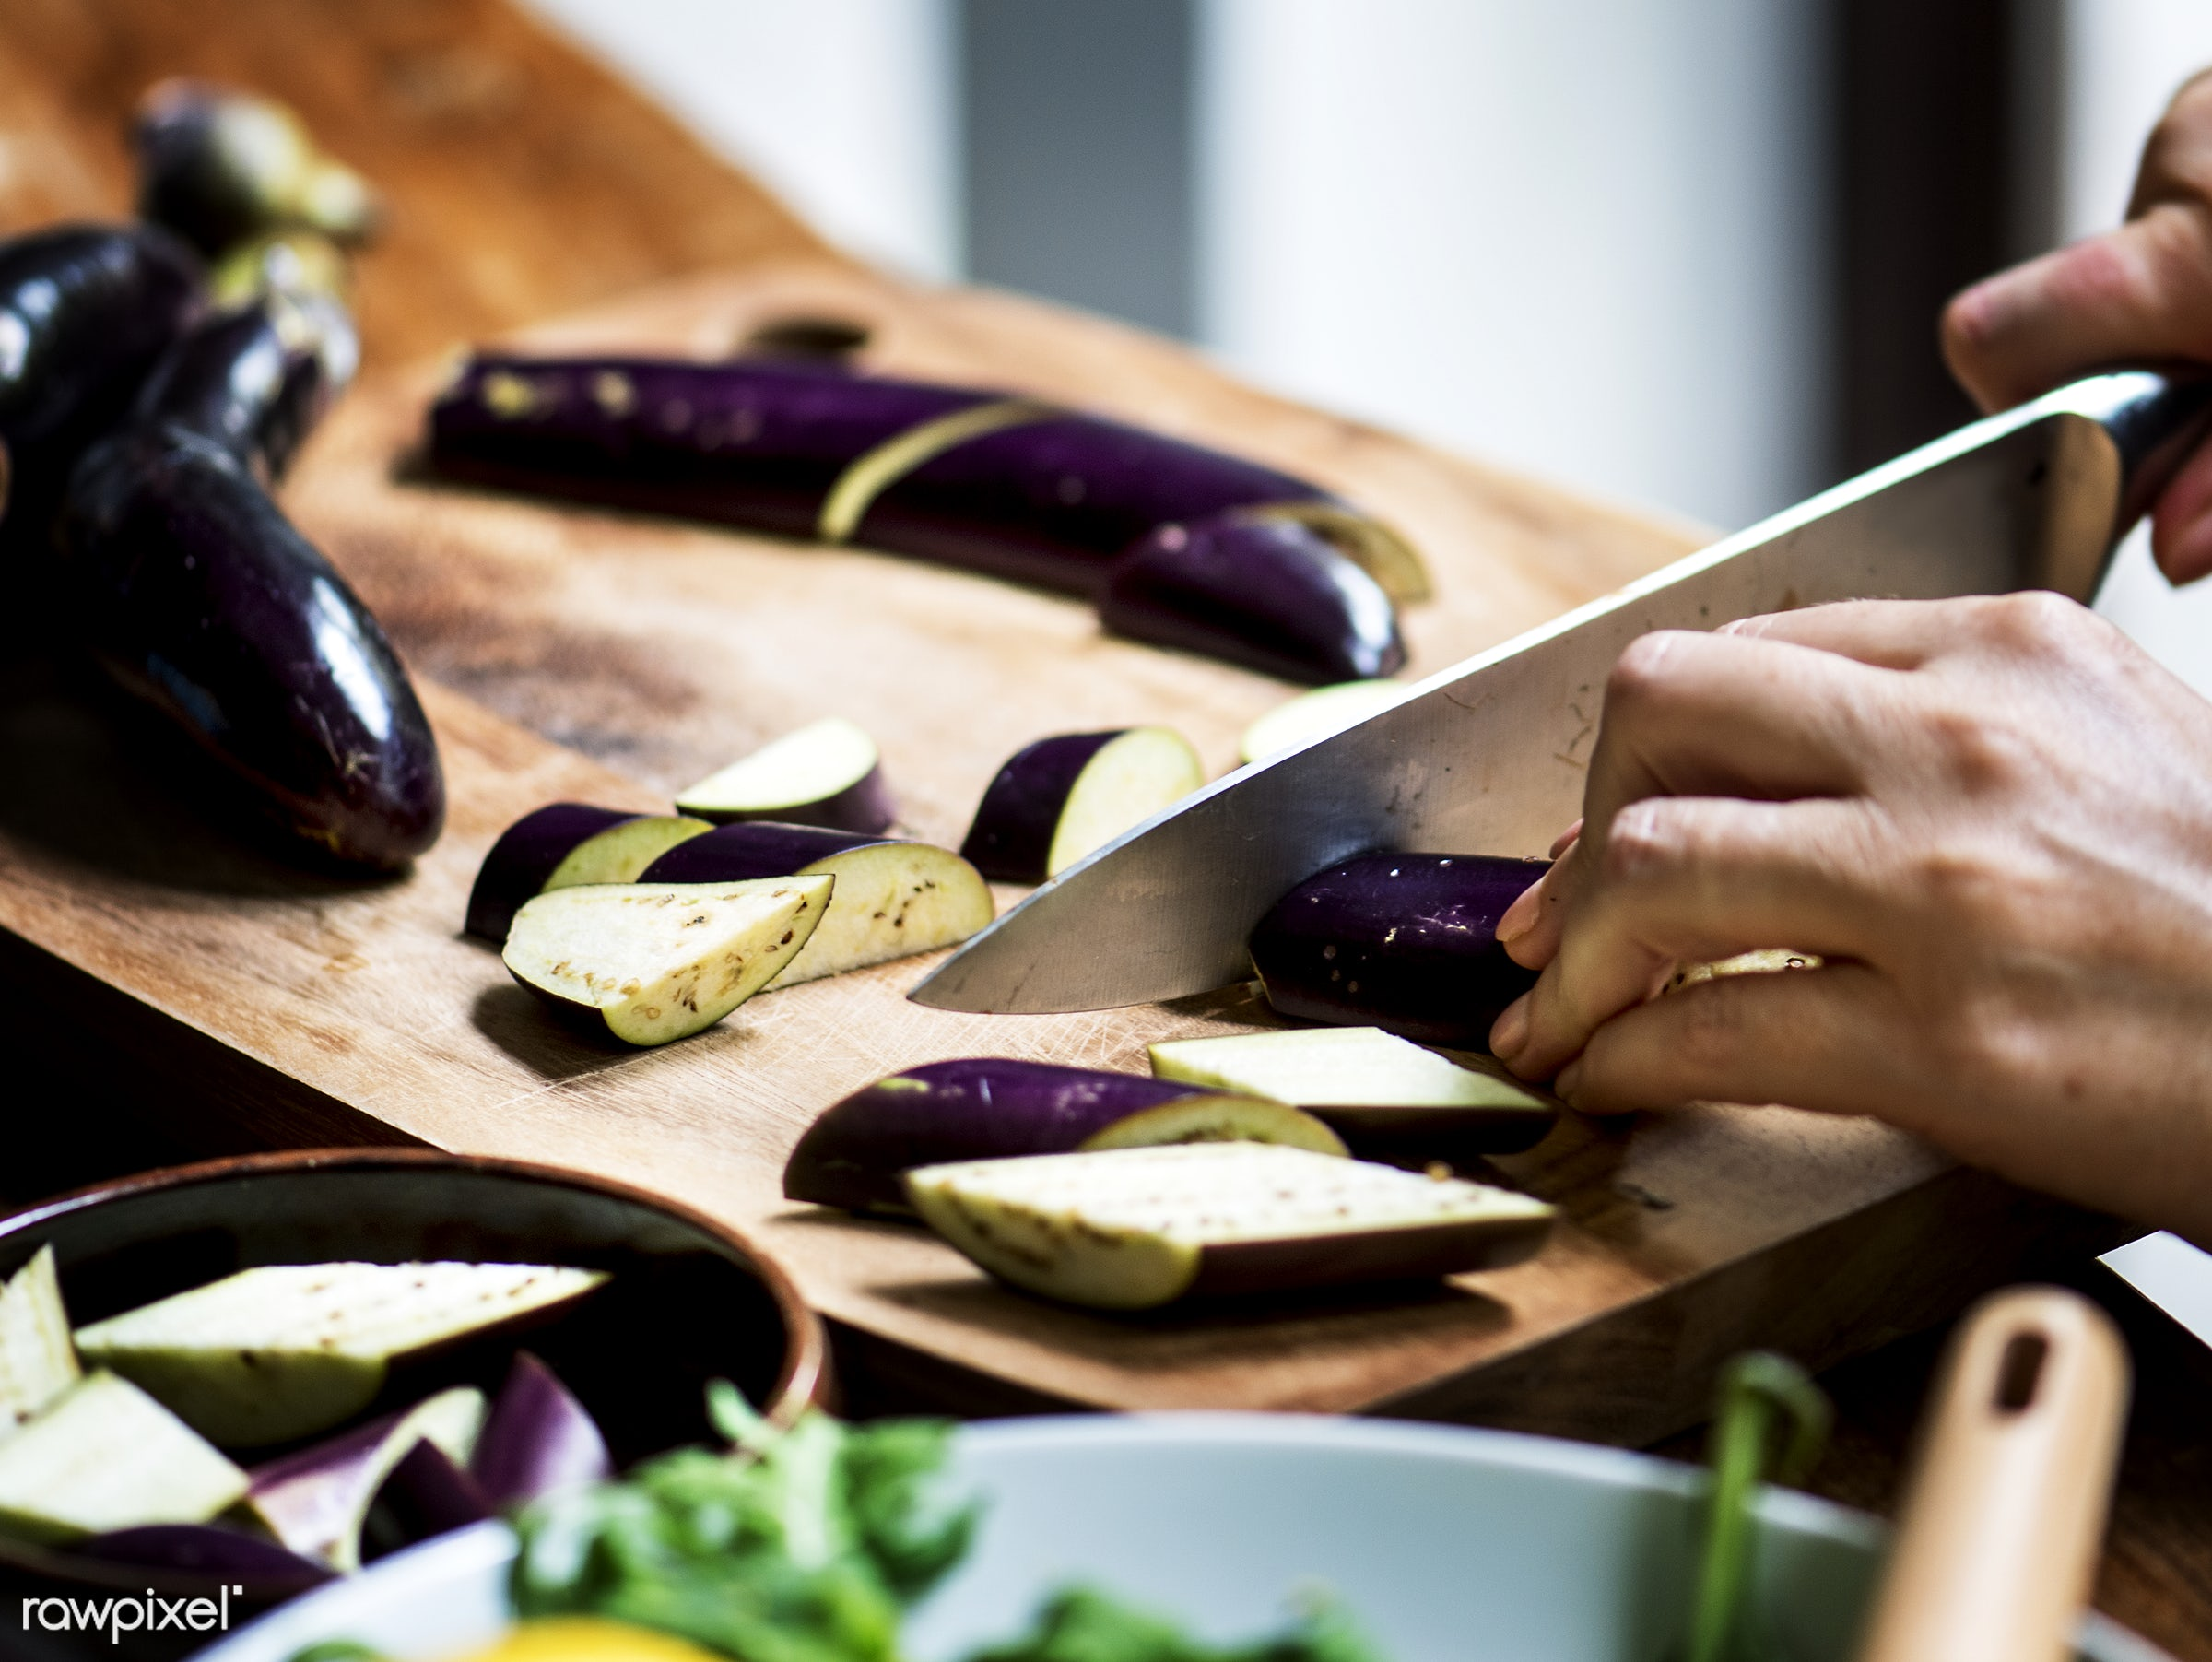 A person slicing vegetable - raw, diverse, chopping board, eggplant, farm, ingredients, nature, farmer, fresh, hands,...